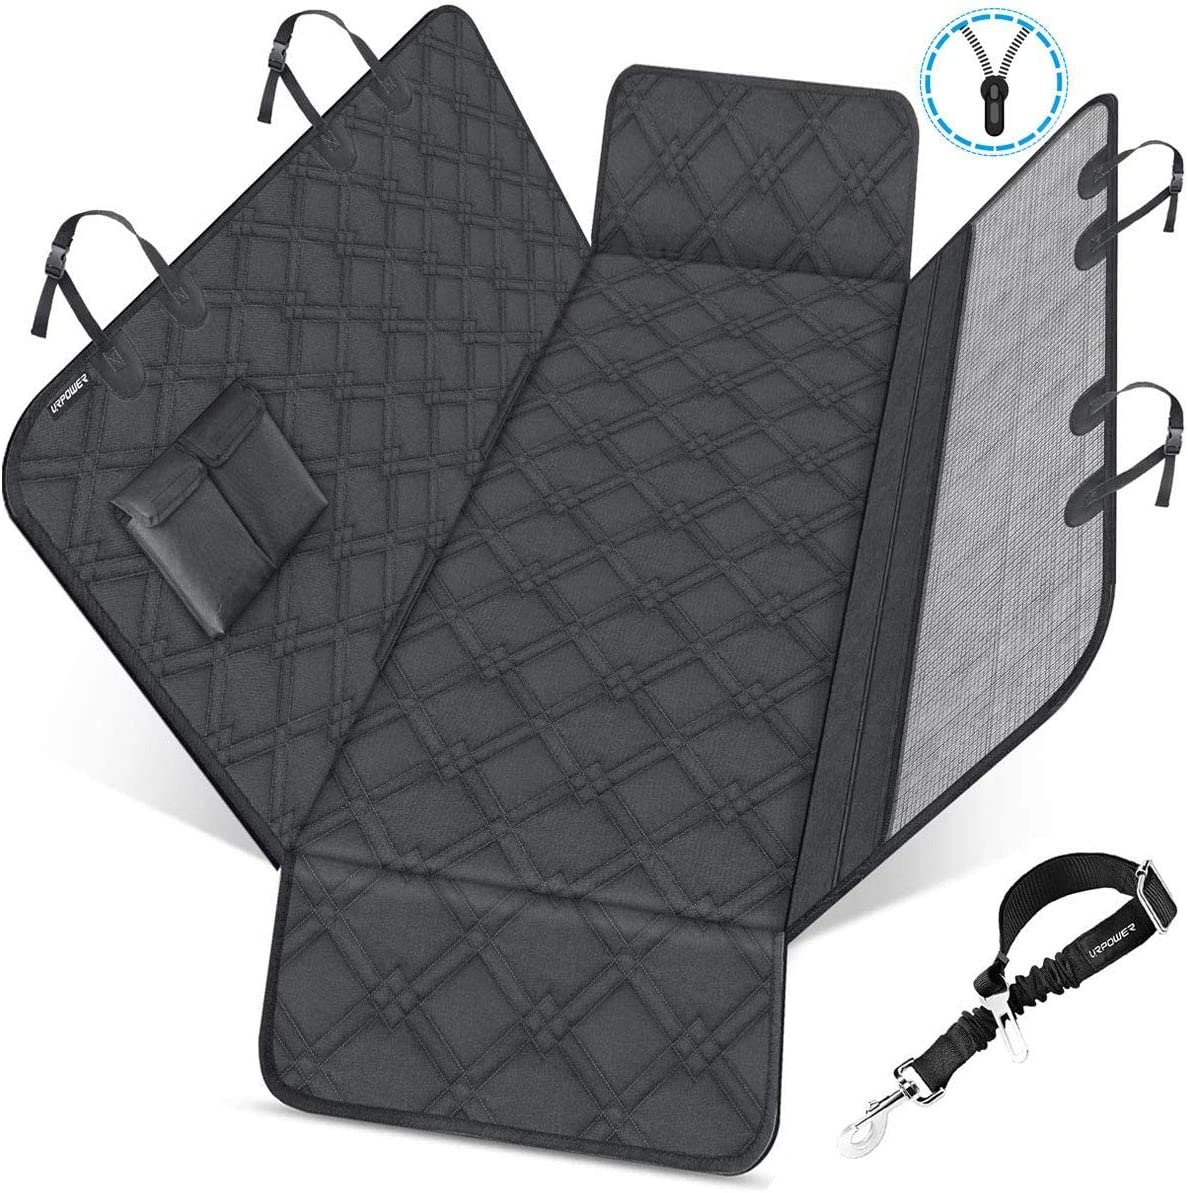 URPOWER Dog Seat Covers with Detachable Mesh Visual Window 100 Waterproof Dog Car Seat Cover Nonslip Pet Bench Seat Cover with Storage Pockets, Washable Dog Hammock for Cars Trucks and SUVs